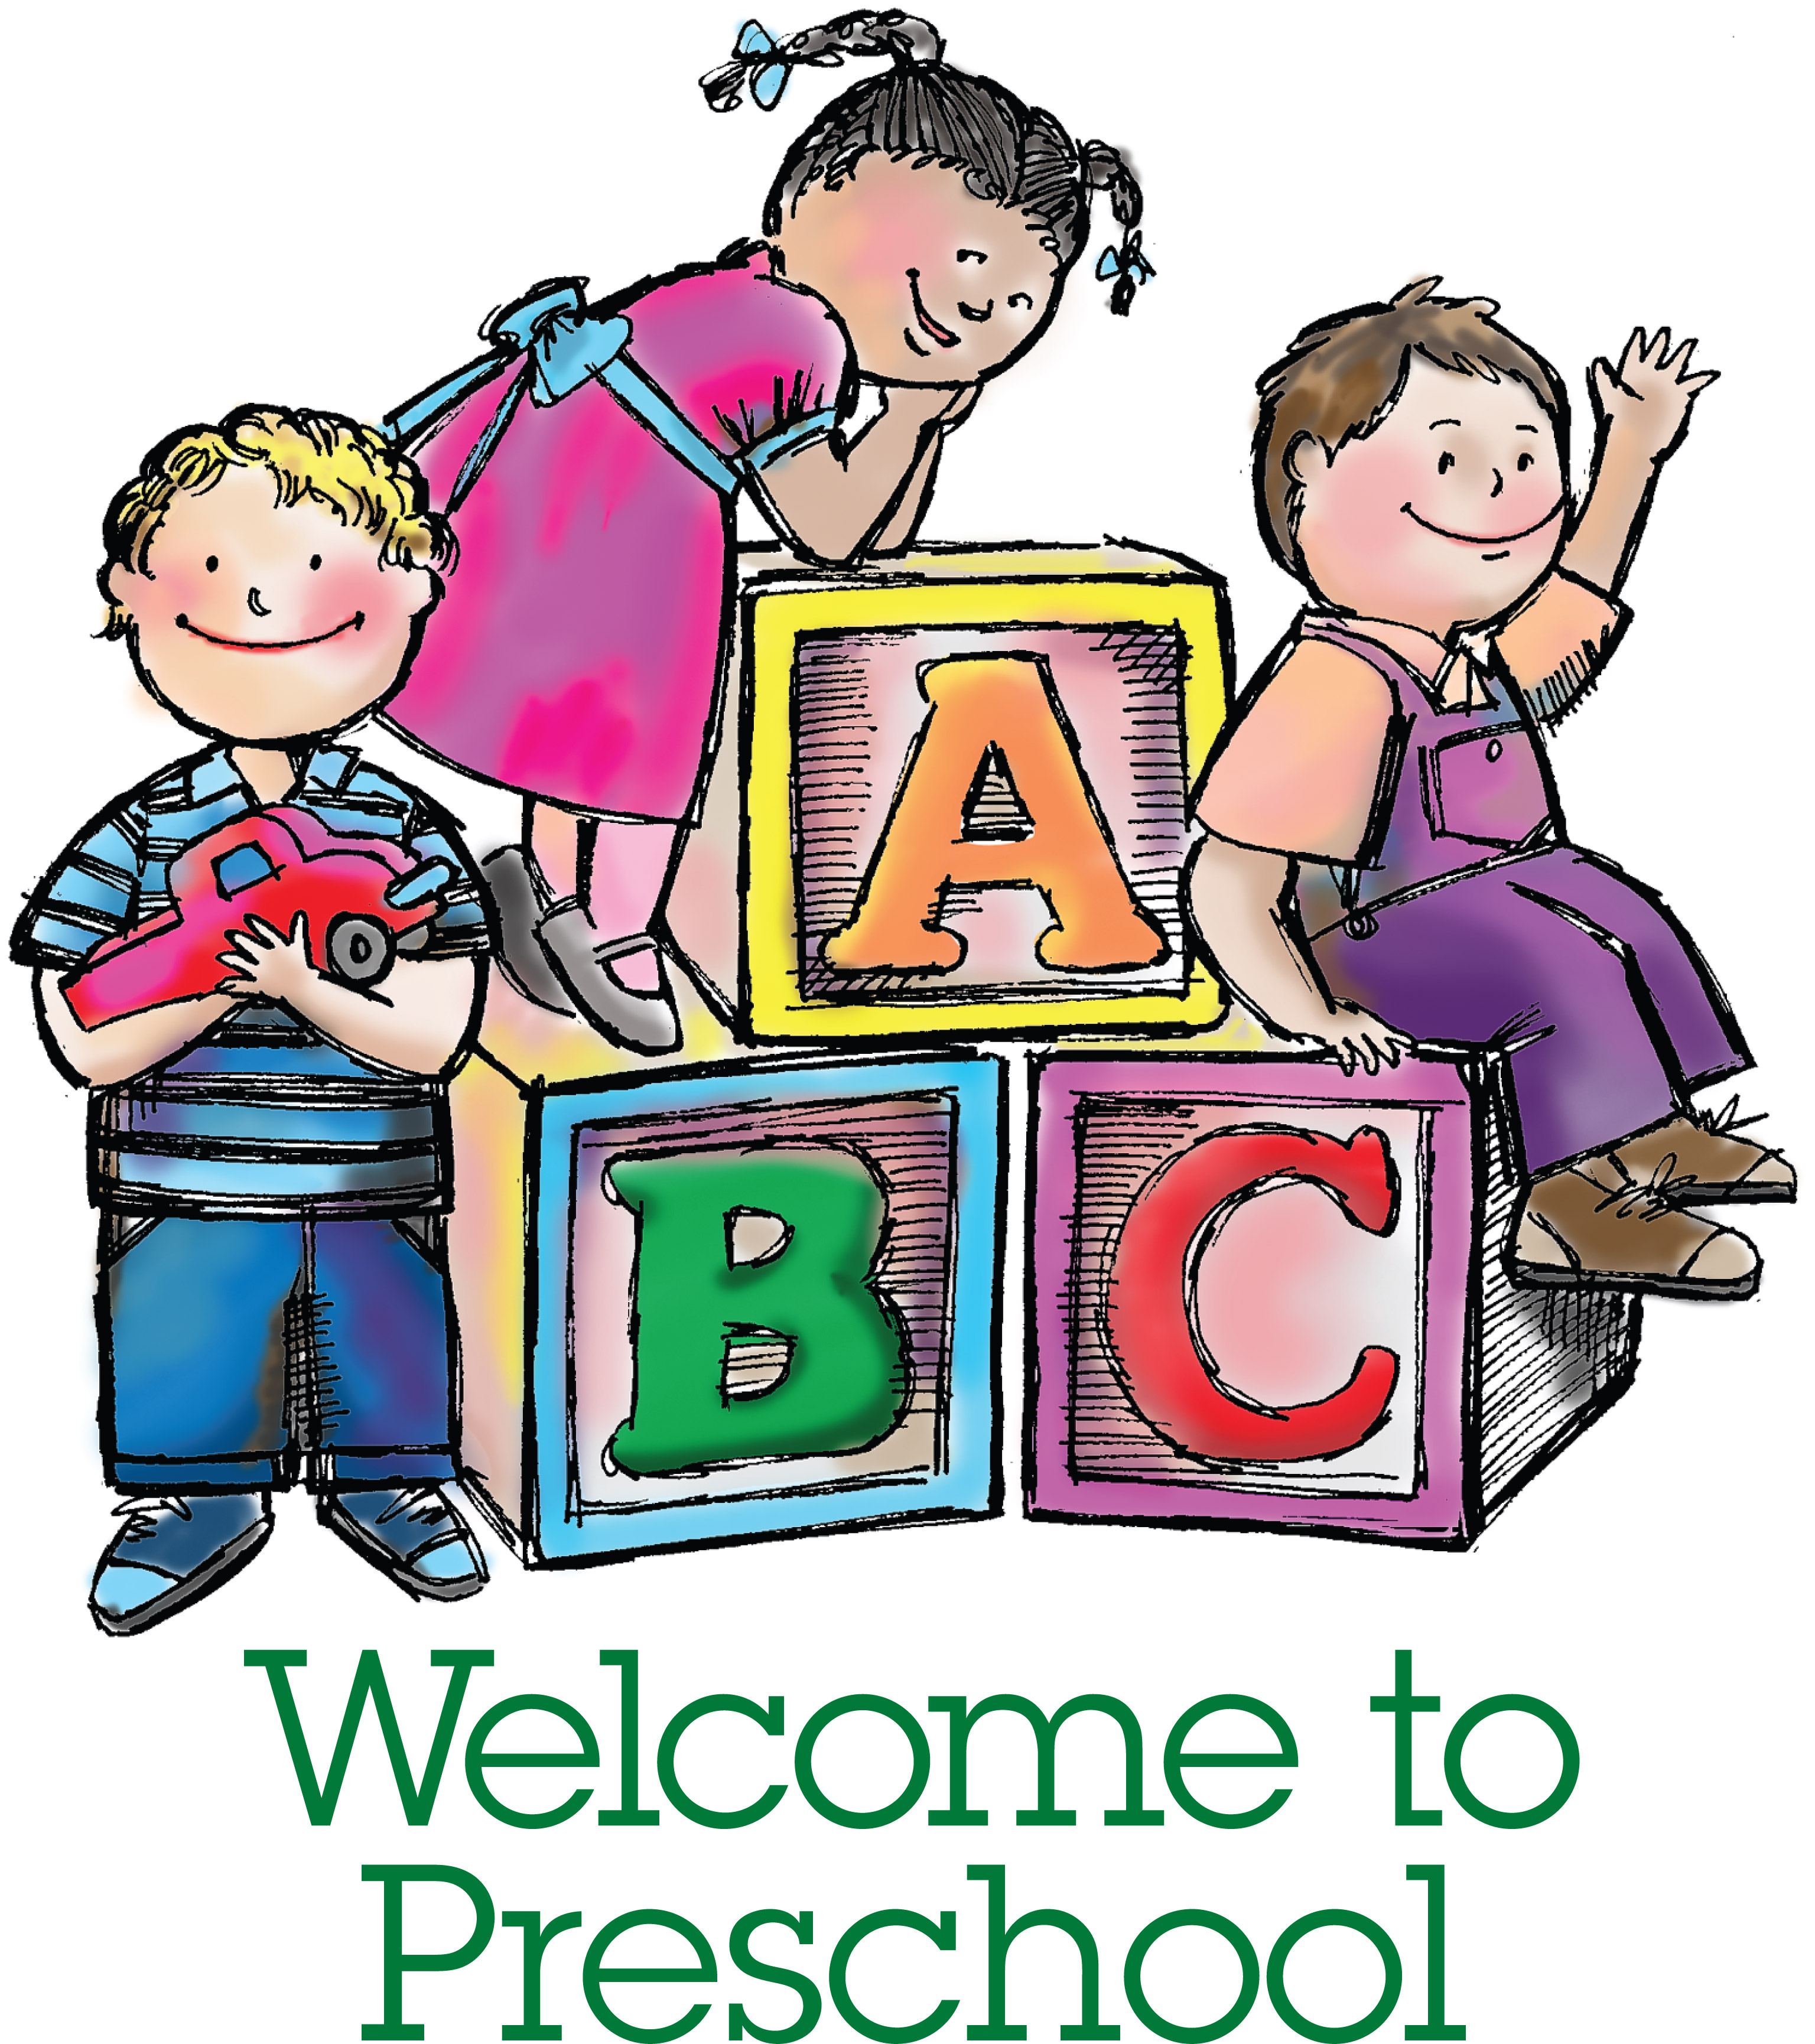 Welcome To Preschool Clipart Clipart Pan-Welcome To Preschool Clipart Clipart Panda Free Clipart Images-19